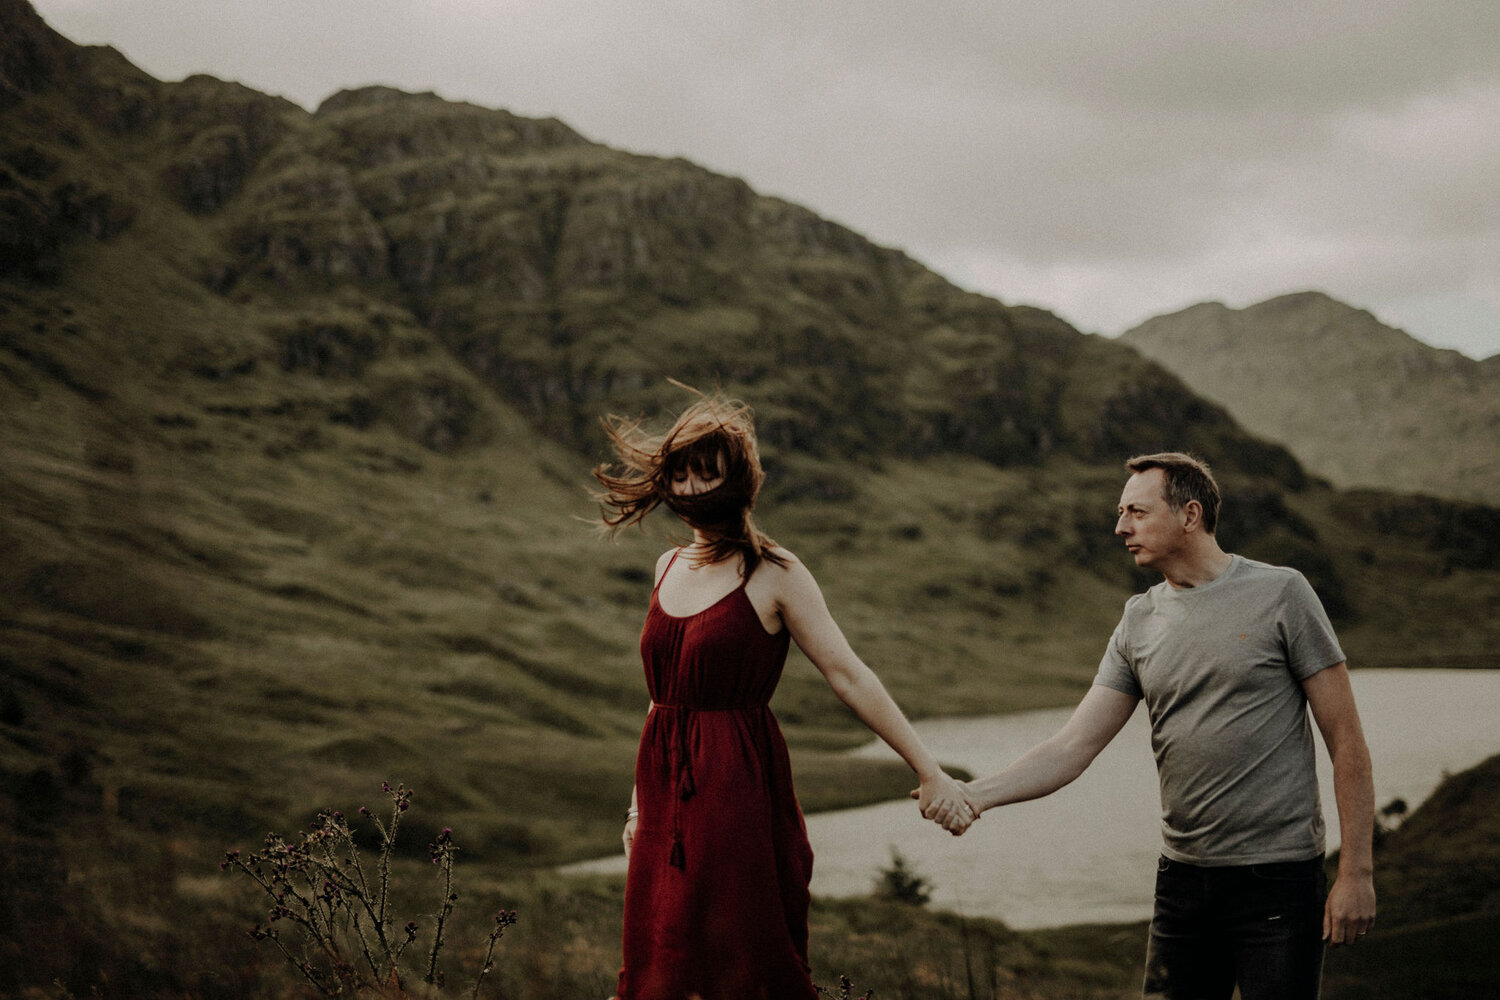 woman and man holding their hands wind blowing hair in mountains with a lake behind